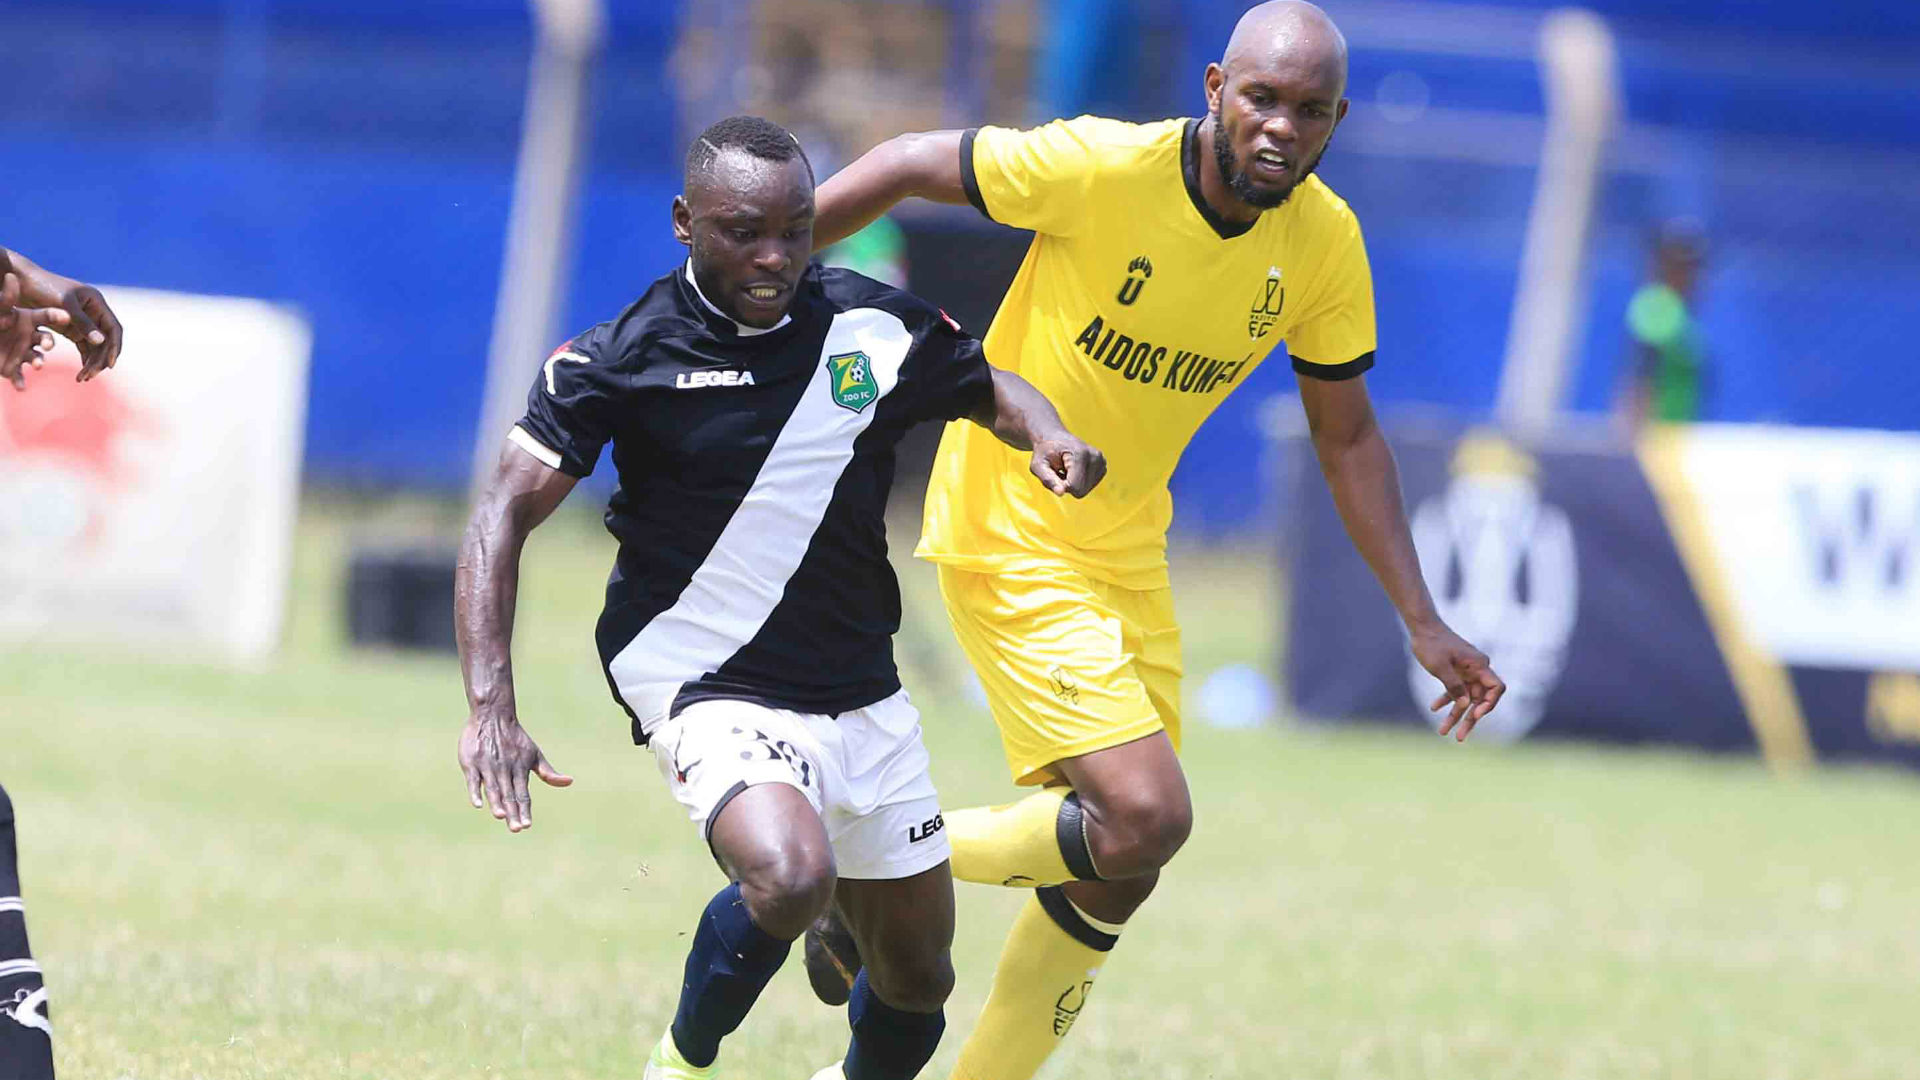 FKFPL Friday Round Up: Isuza wins it for Wazito as Mathare, Bandari tie at Kasarani